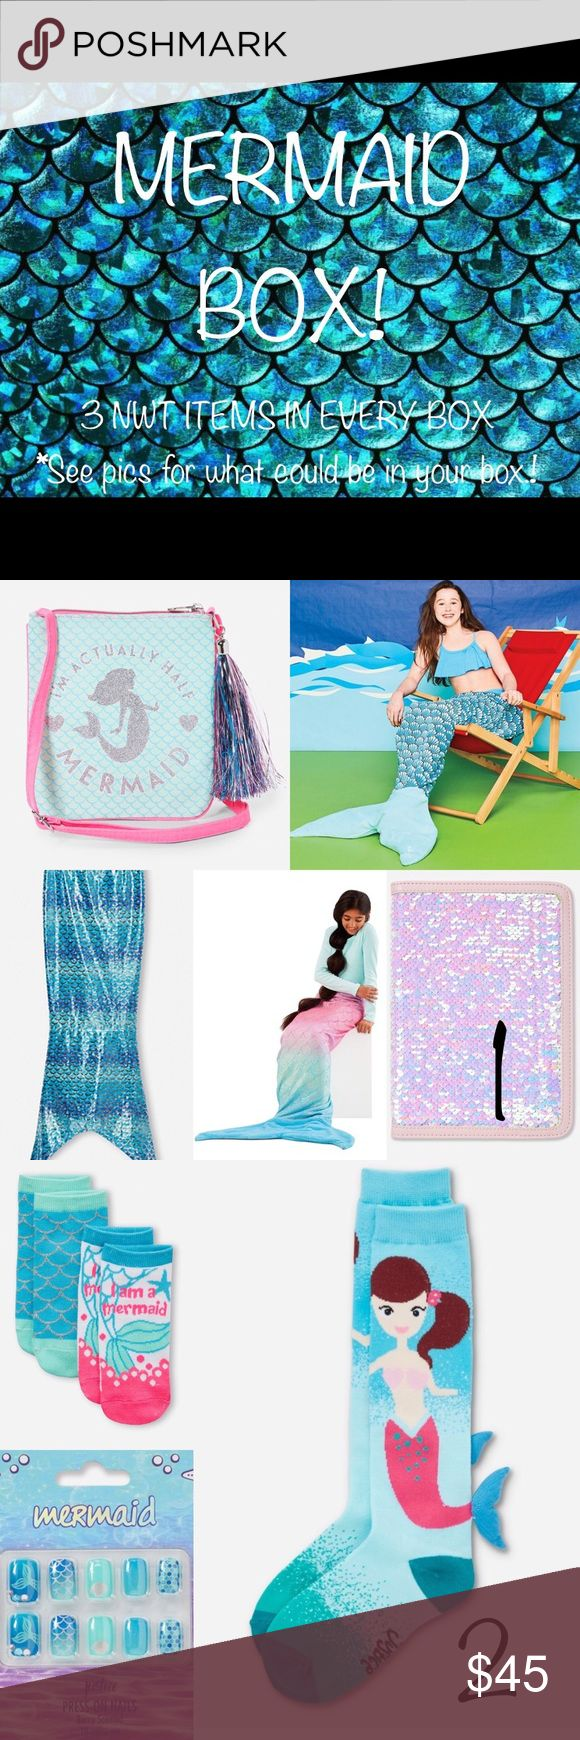 Mermaid Box - 3 New Items for the Mermaid at Heart This box includes one item from each picture (3 in total). All items are new with tags! From Pic 1, your box will include one of these: Mermaid Tail Blanket, Mermaid Tail Towel, Mermaid Tail Coverup, Mermaid Sequin iPad cover & stand, or Mermaid Purse. From Pic 2, your box will include one of these: Mermaid 2 pack socks, Mermaid Knee High Socks, Mermaid Press On Nails, Hatch a Mermaid Toy or Mermaid Putty Toy. From Pic 3, your box will…